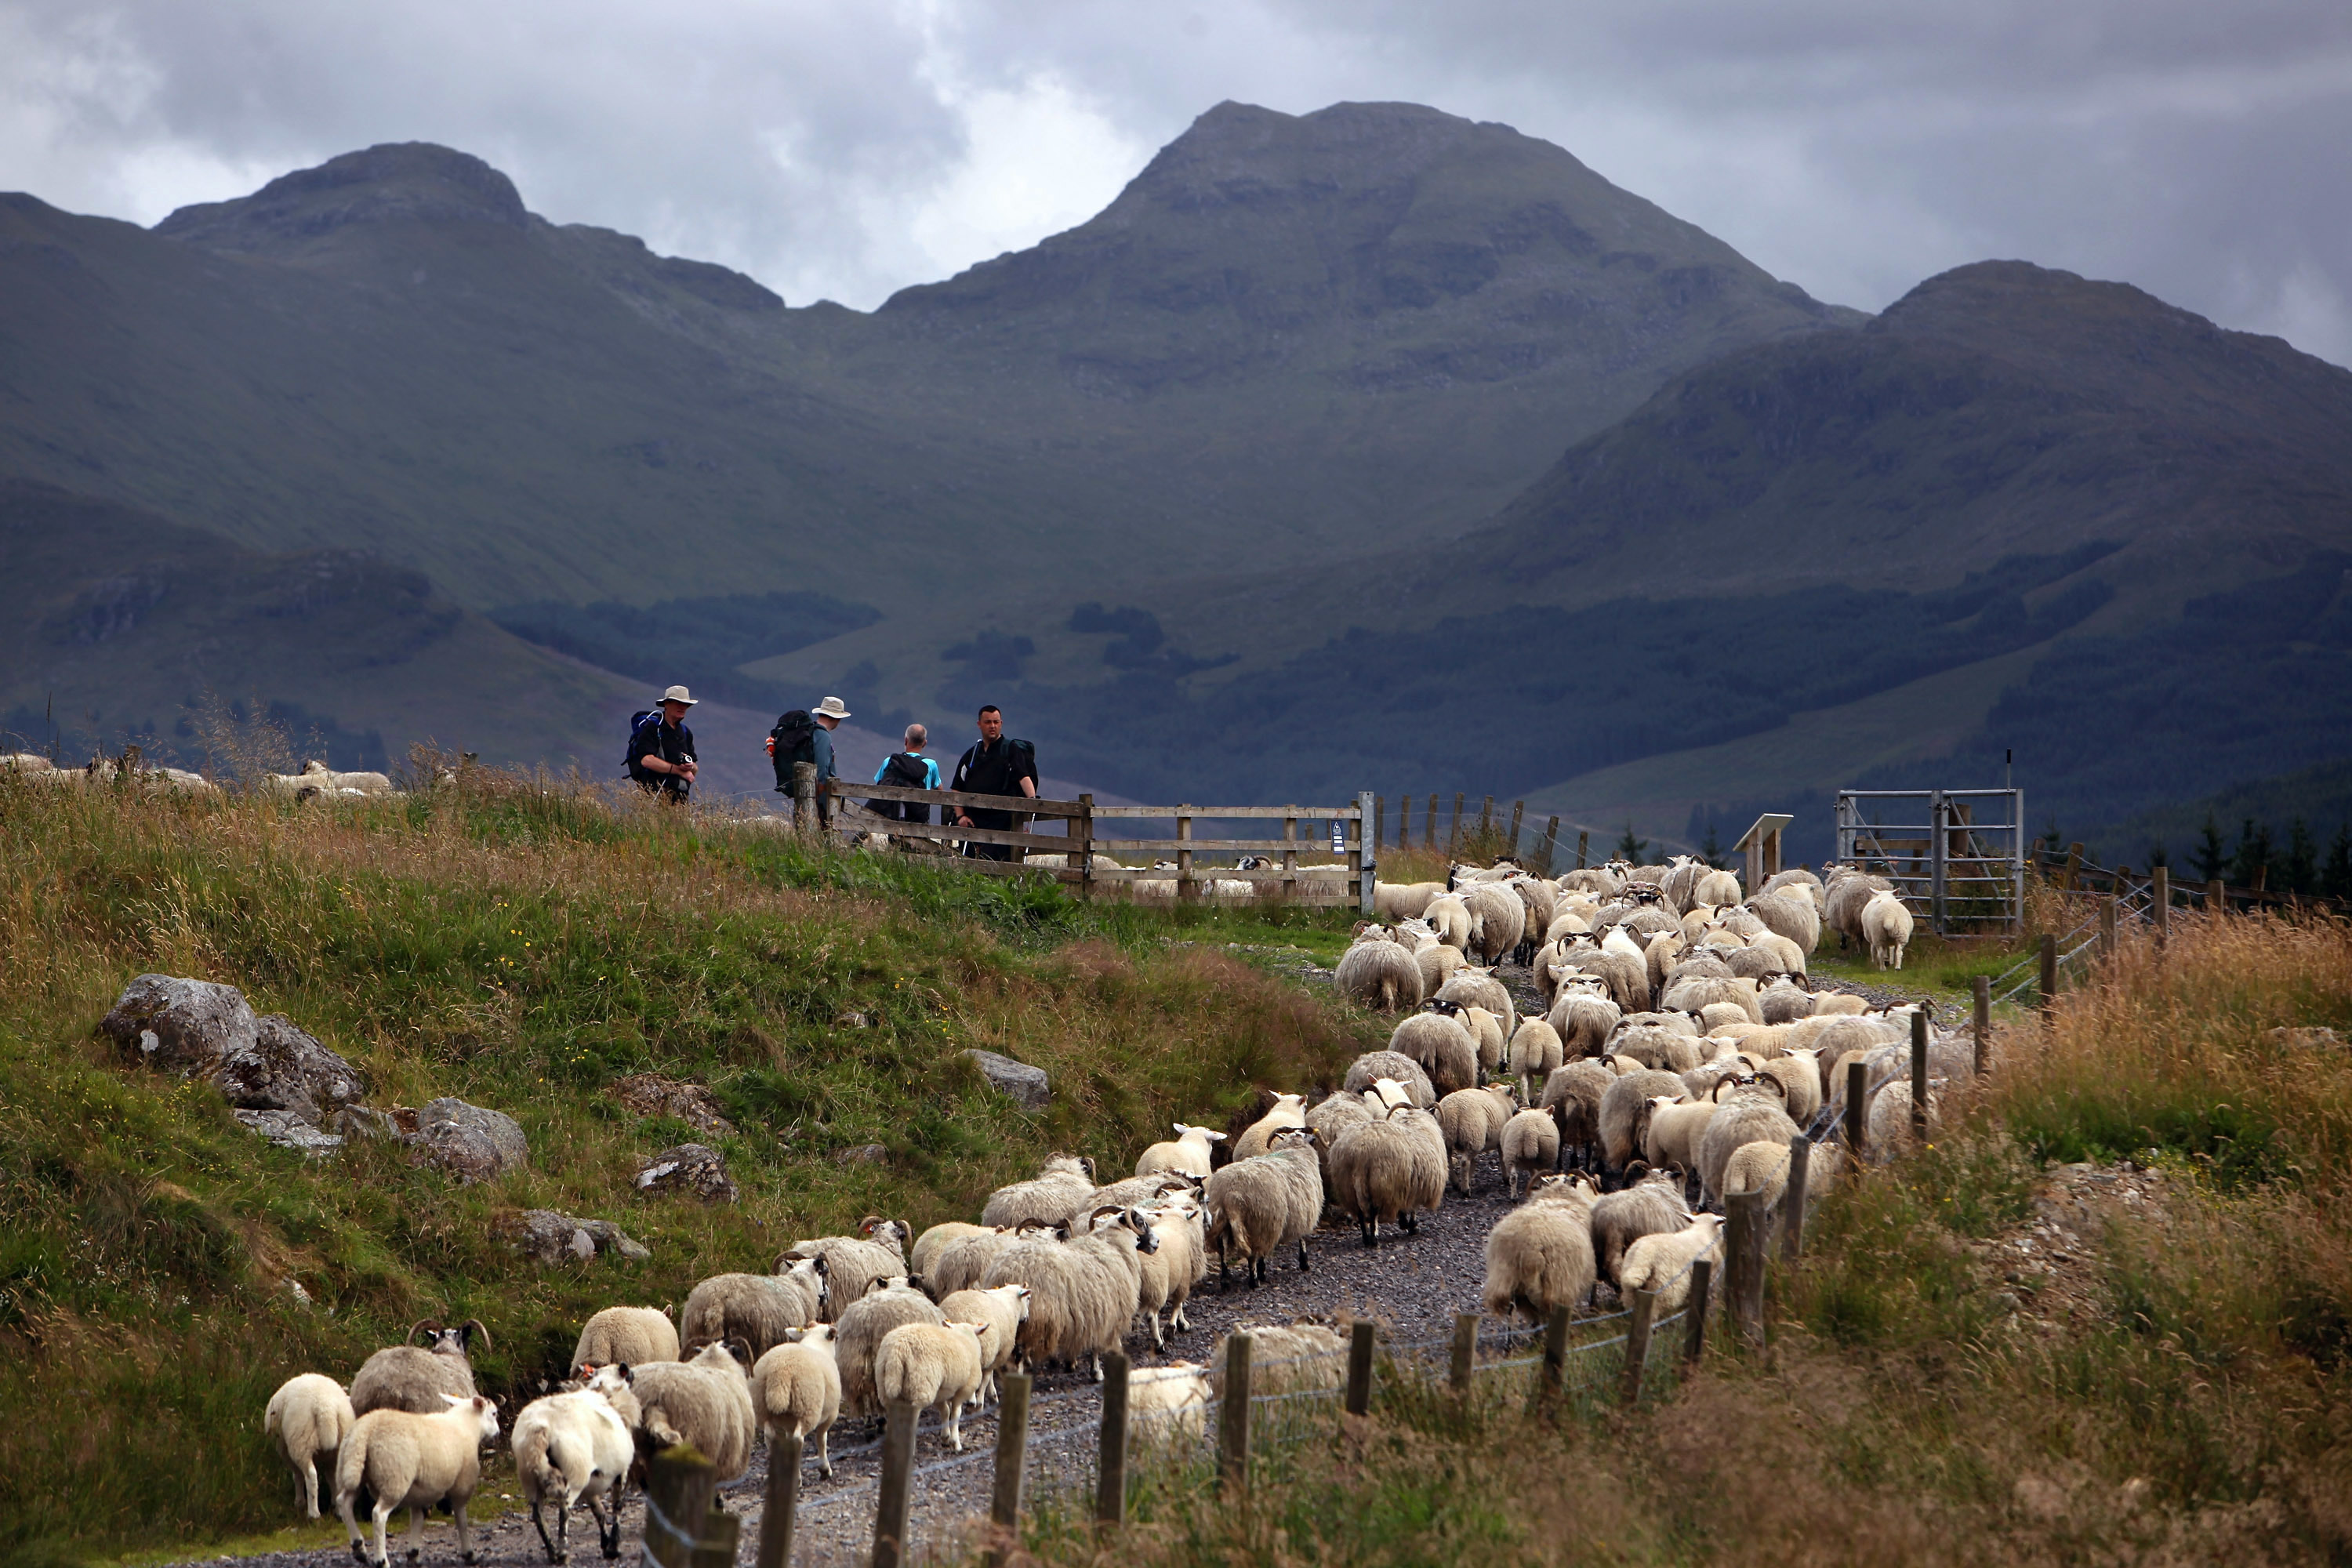 Sheep farming has an impact on landscape and tourism